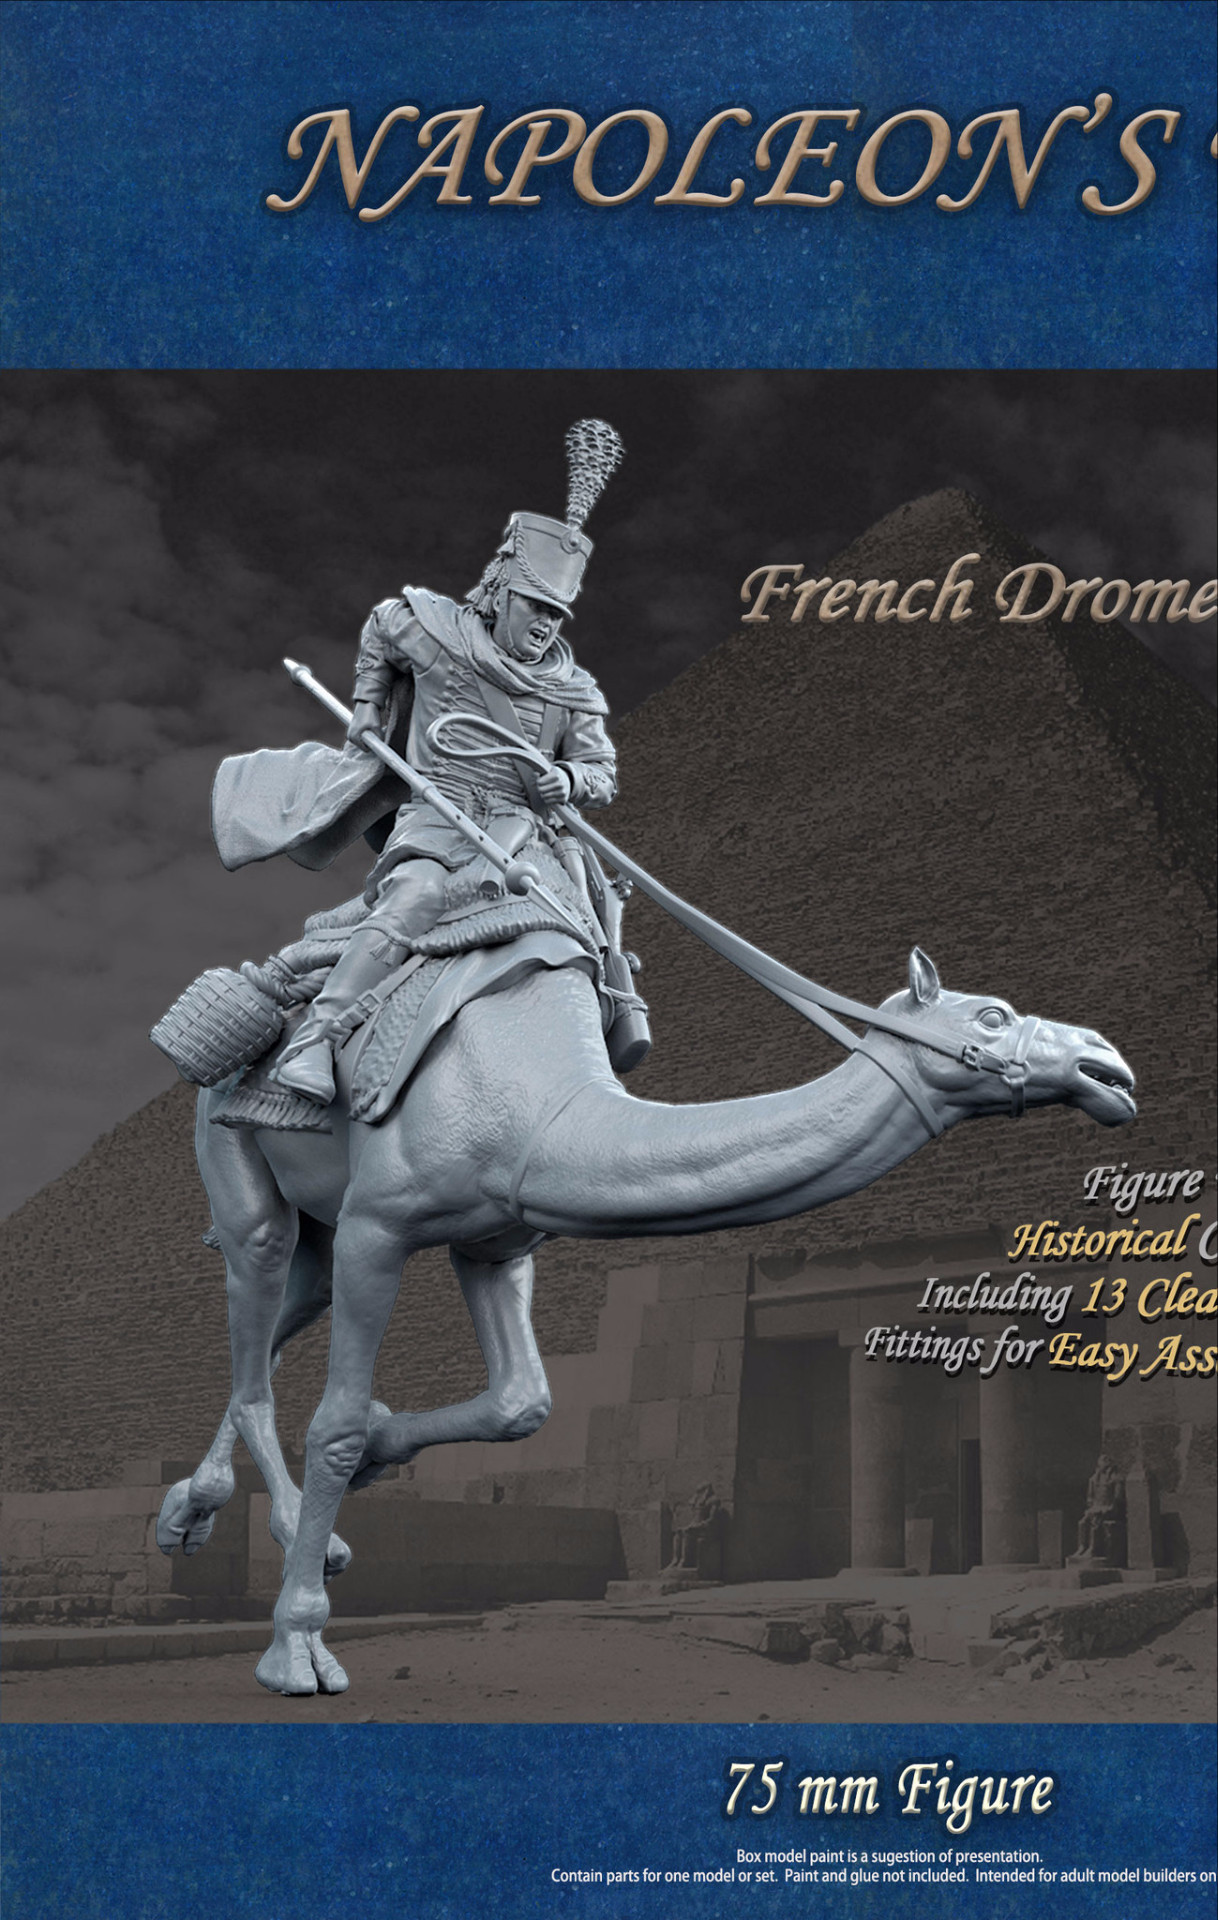 French Dromedaire Regiment